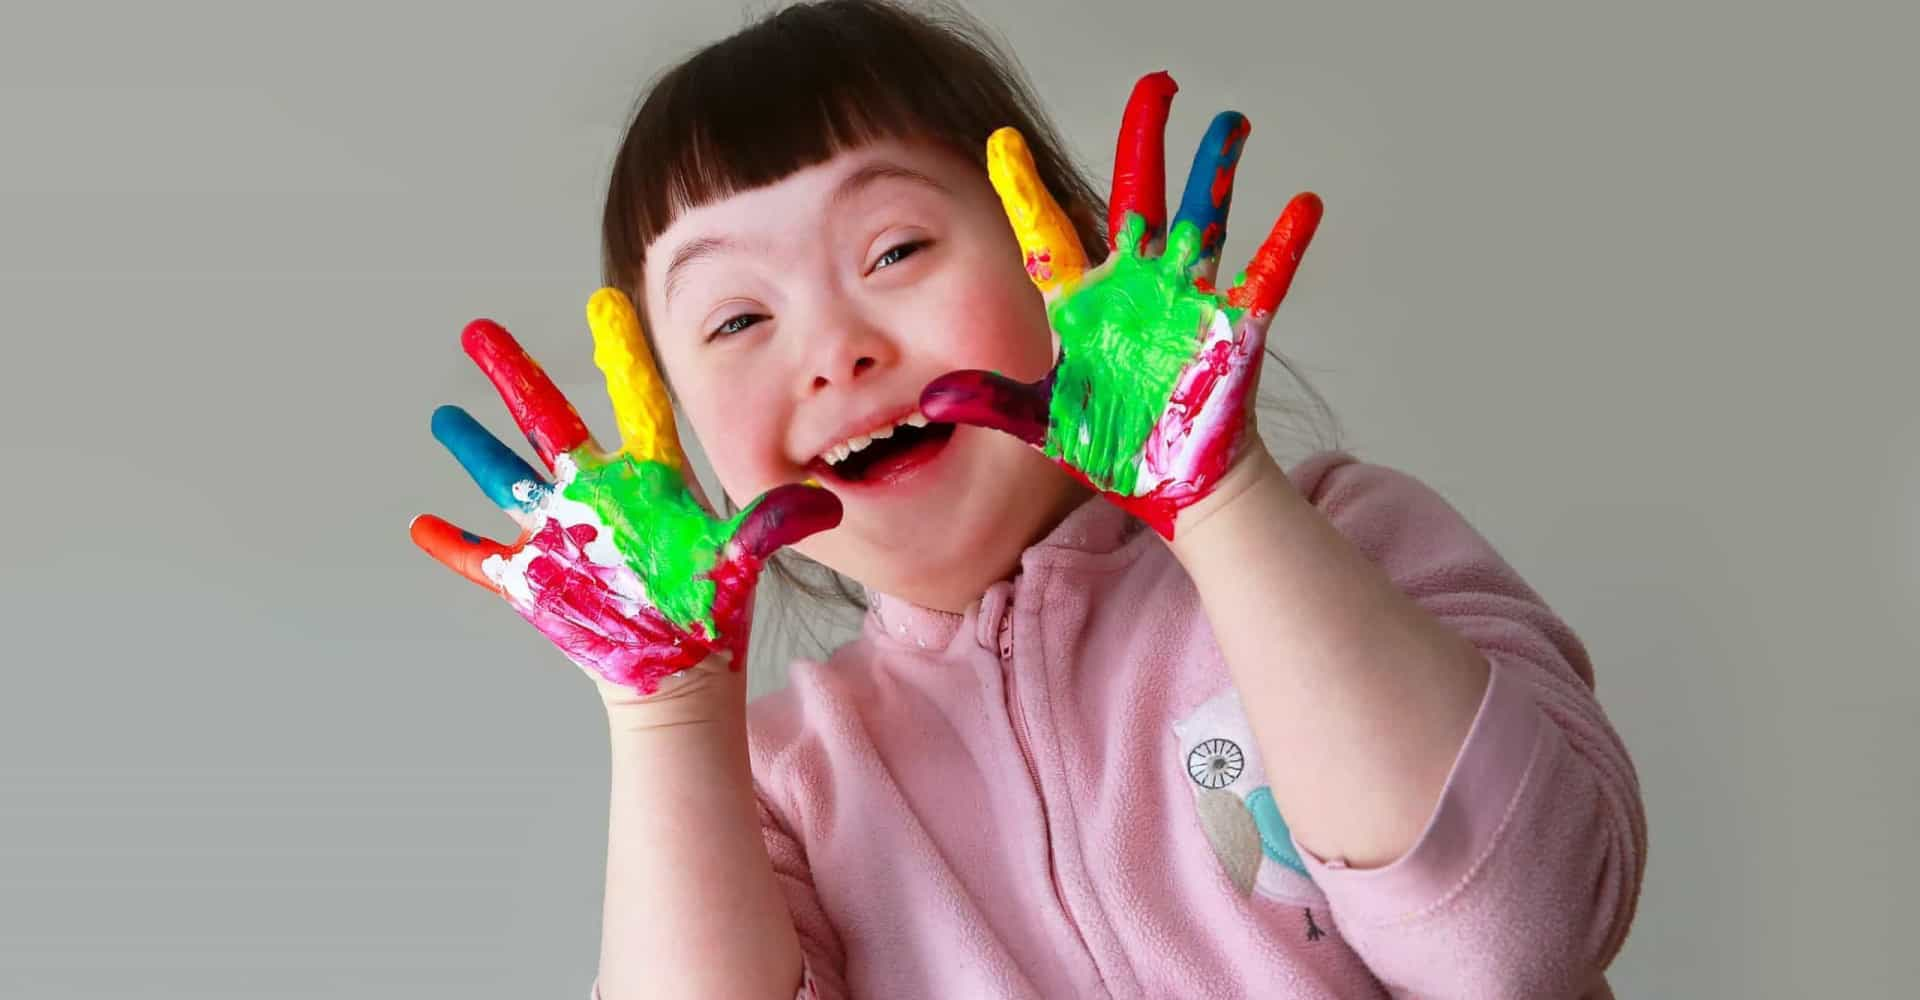 All you need to know about Down syndrome